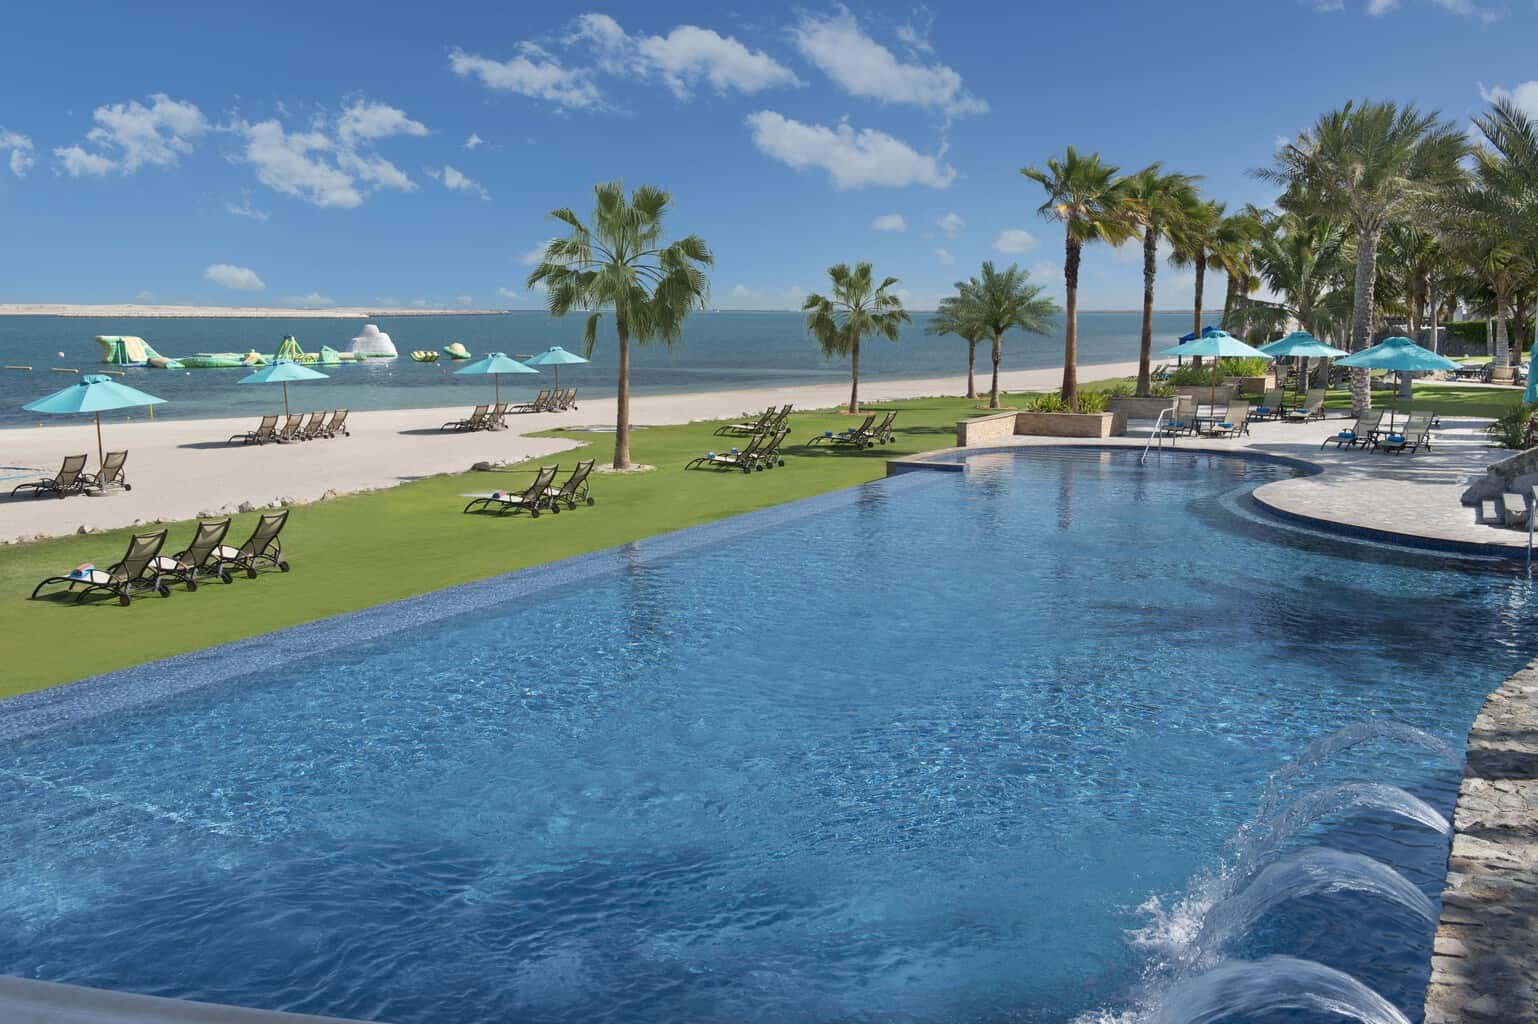 Beachfront pool with palm trees and ocean view